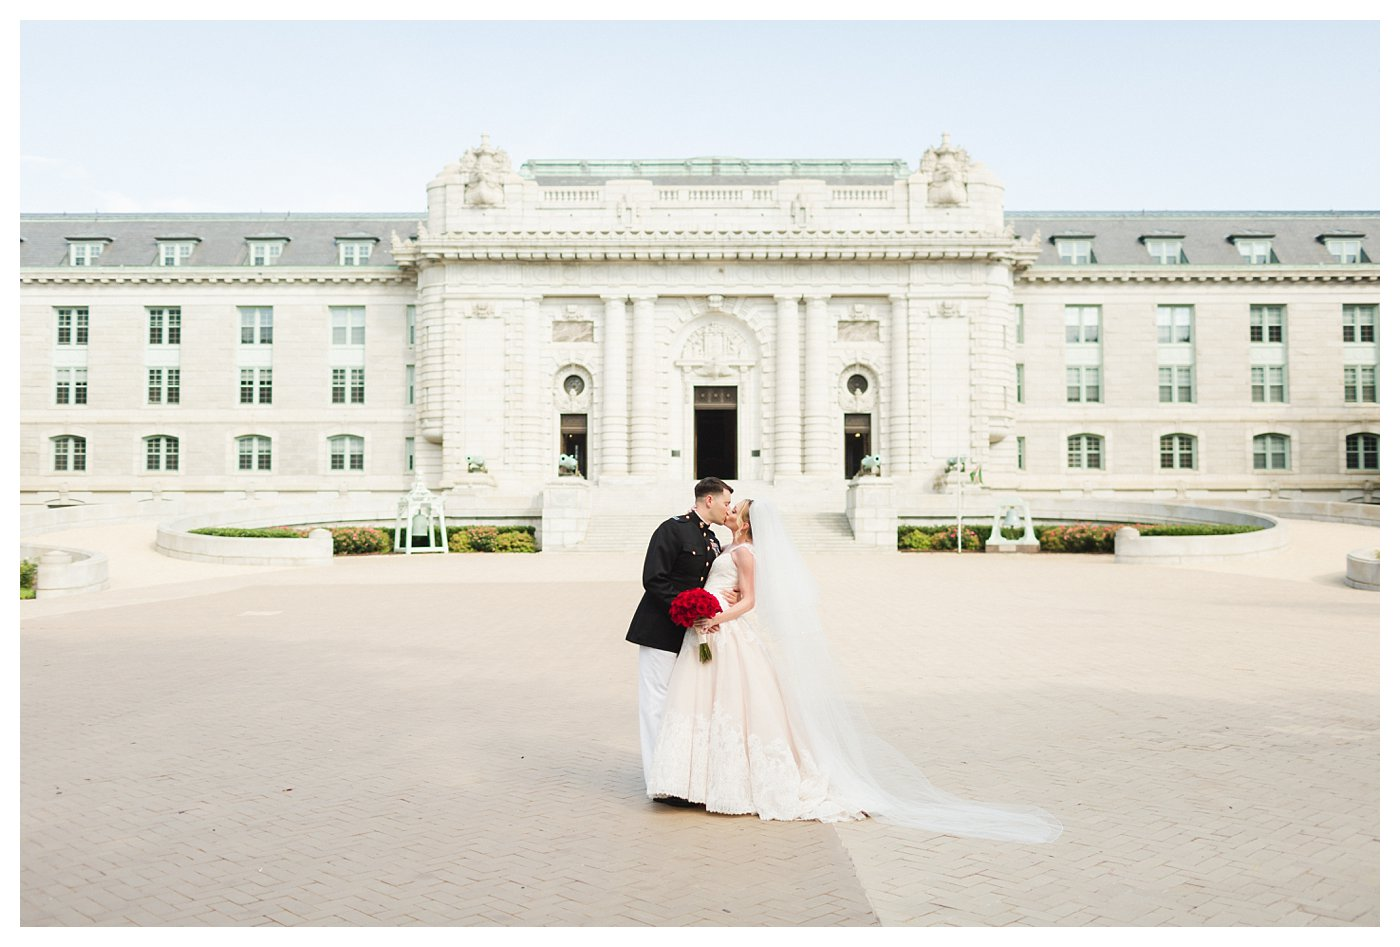 United States Naval Academy Wedding Photography by Amanda and Grady Photogrpahy